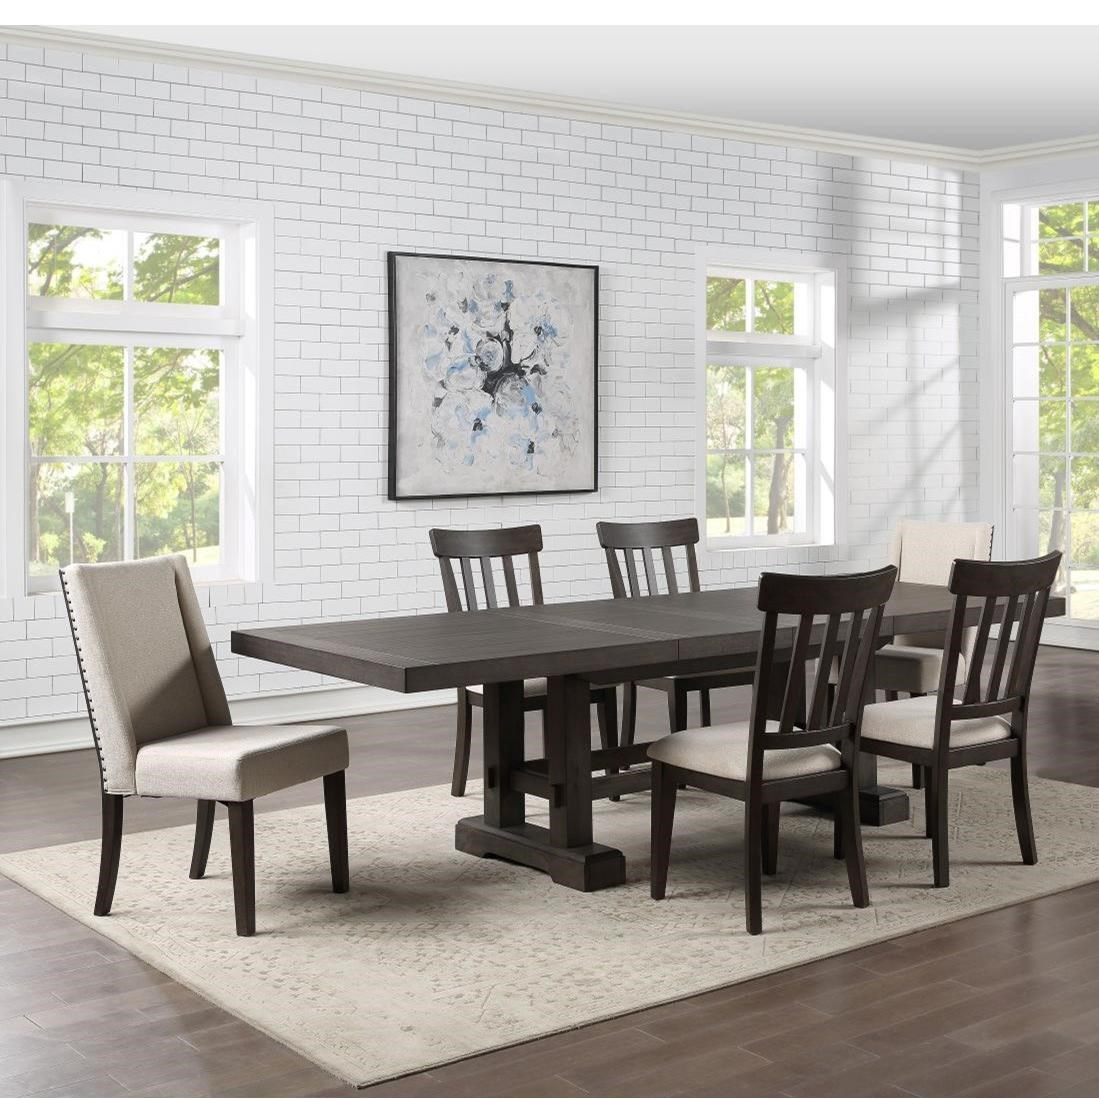 Napa 7-Piece Table and Chair Set by Steve Silver at Van Hill Furniture